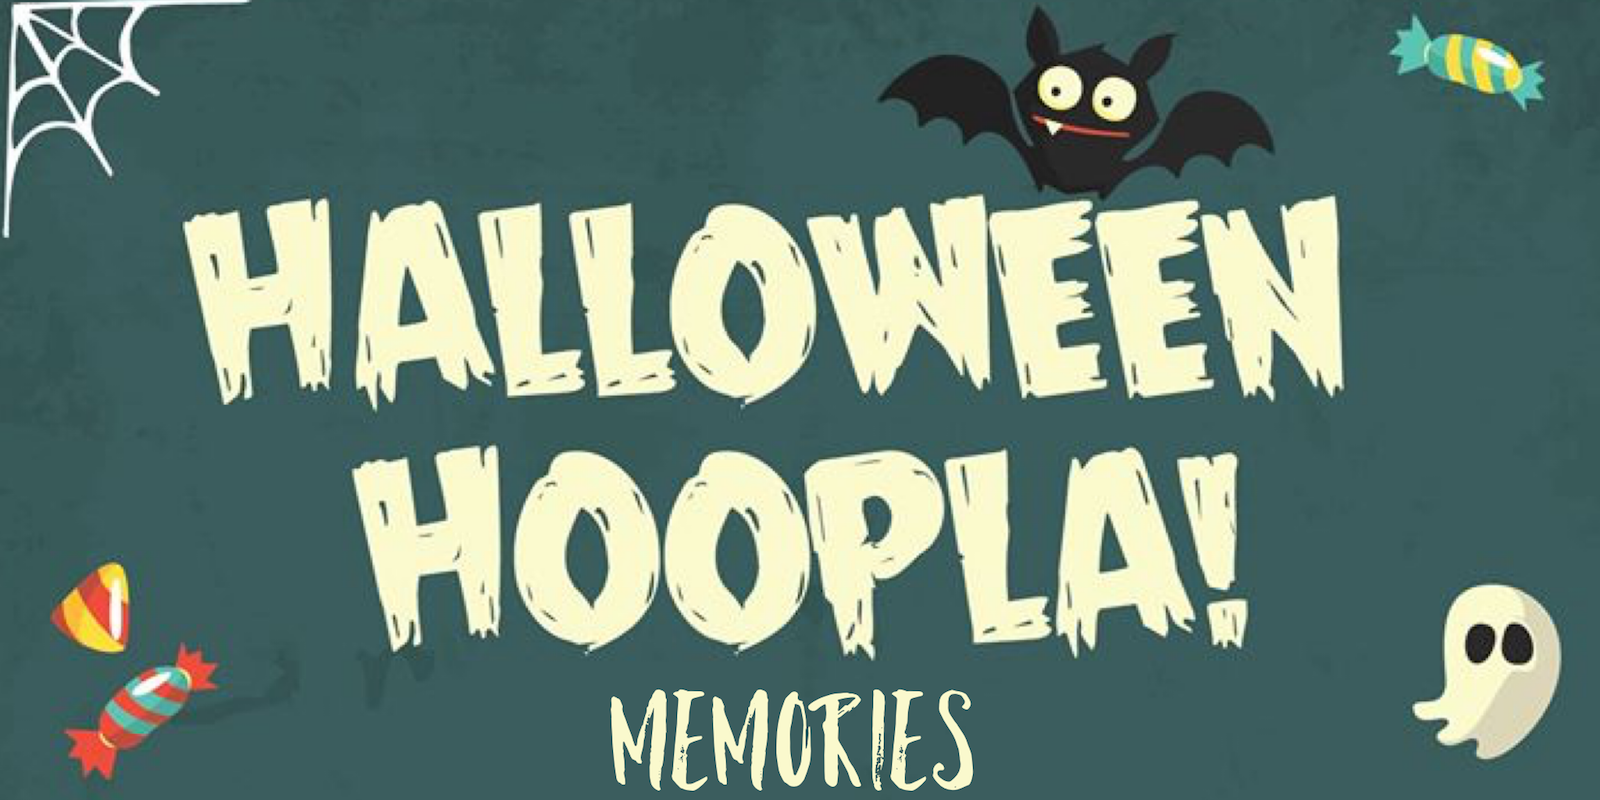 Halloween Hoopla Memories